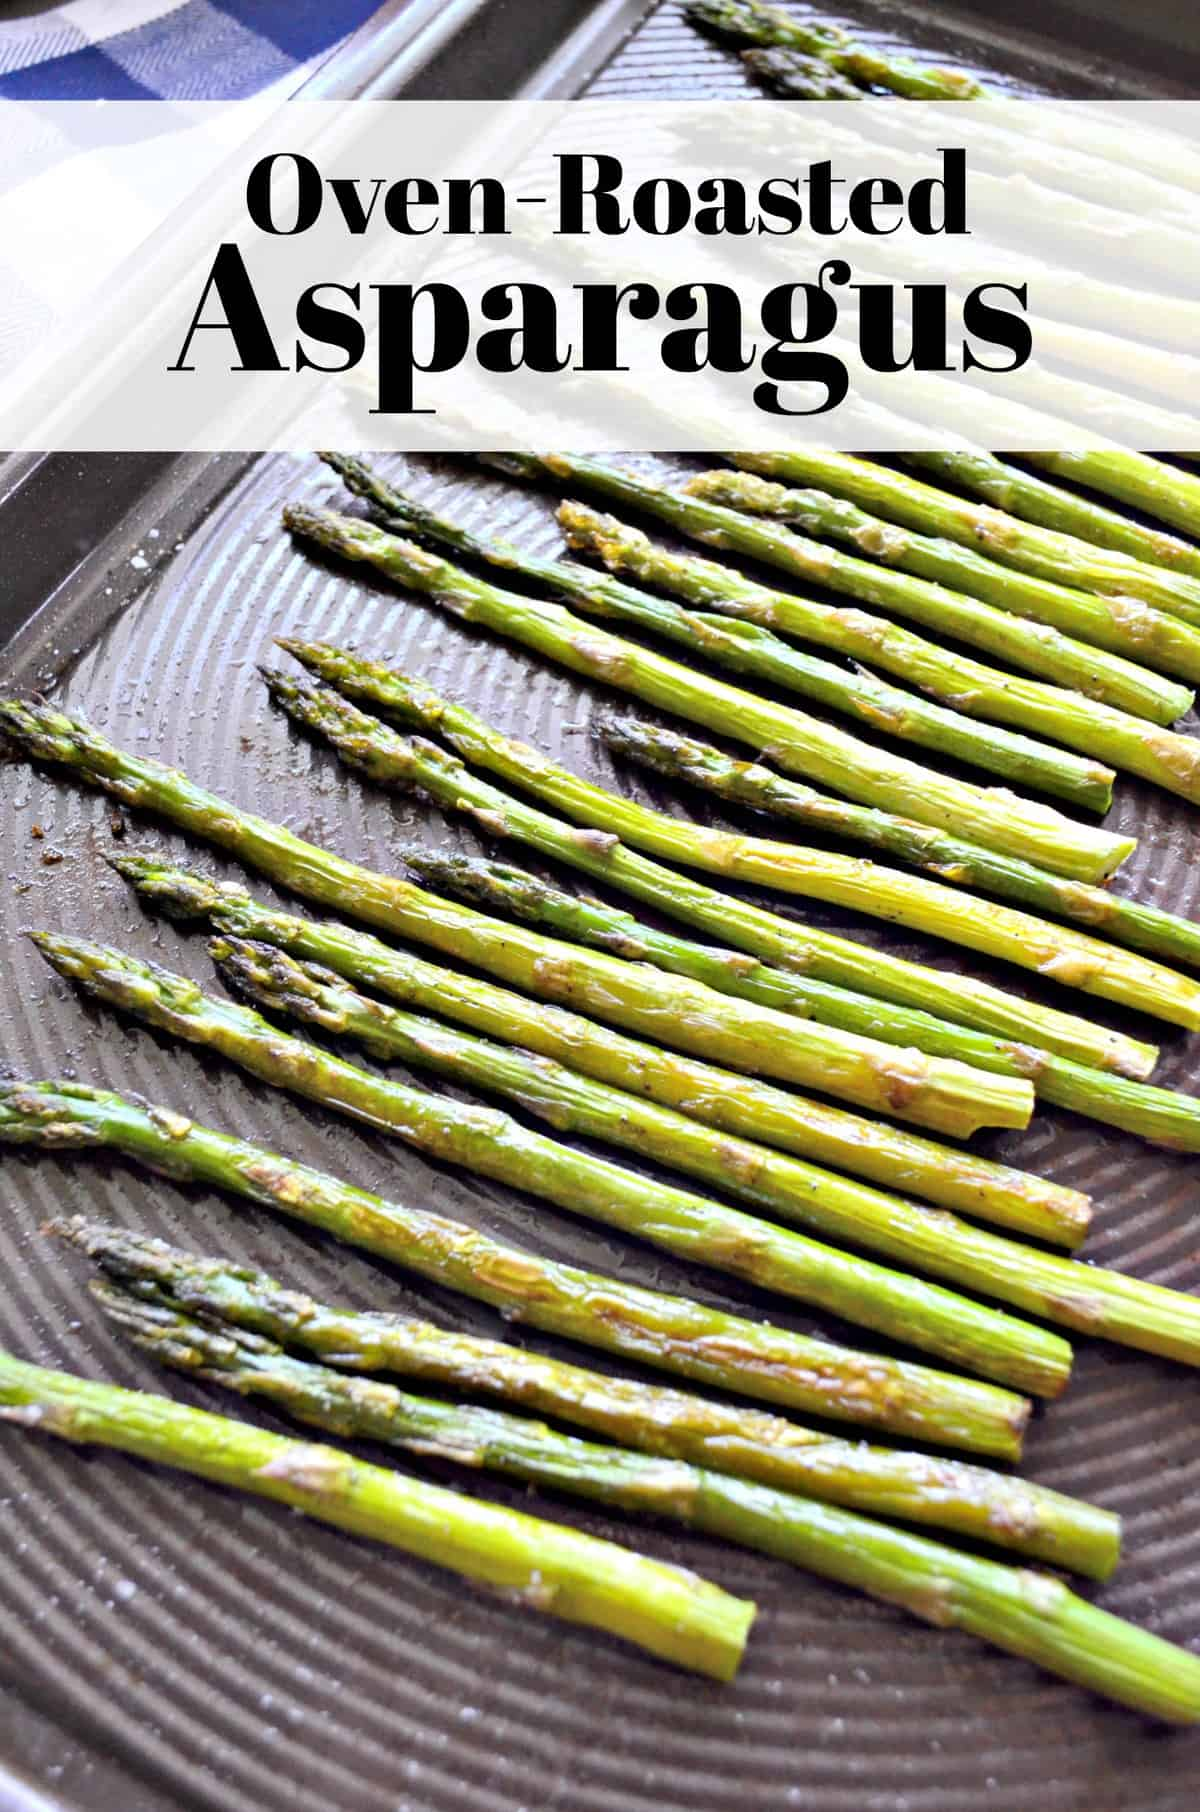 Top view of roasted asparagus on sheet pan sprinkled with salt and title text.